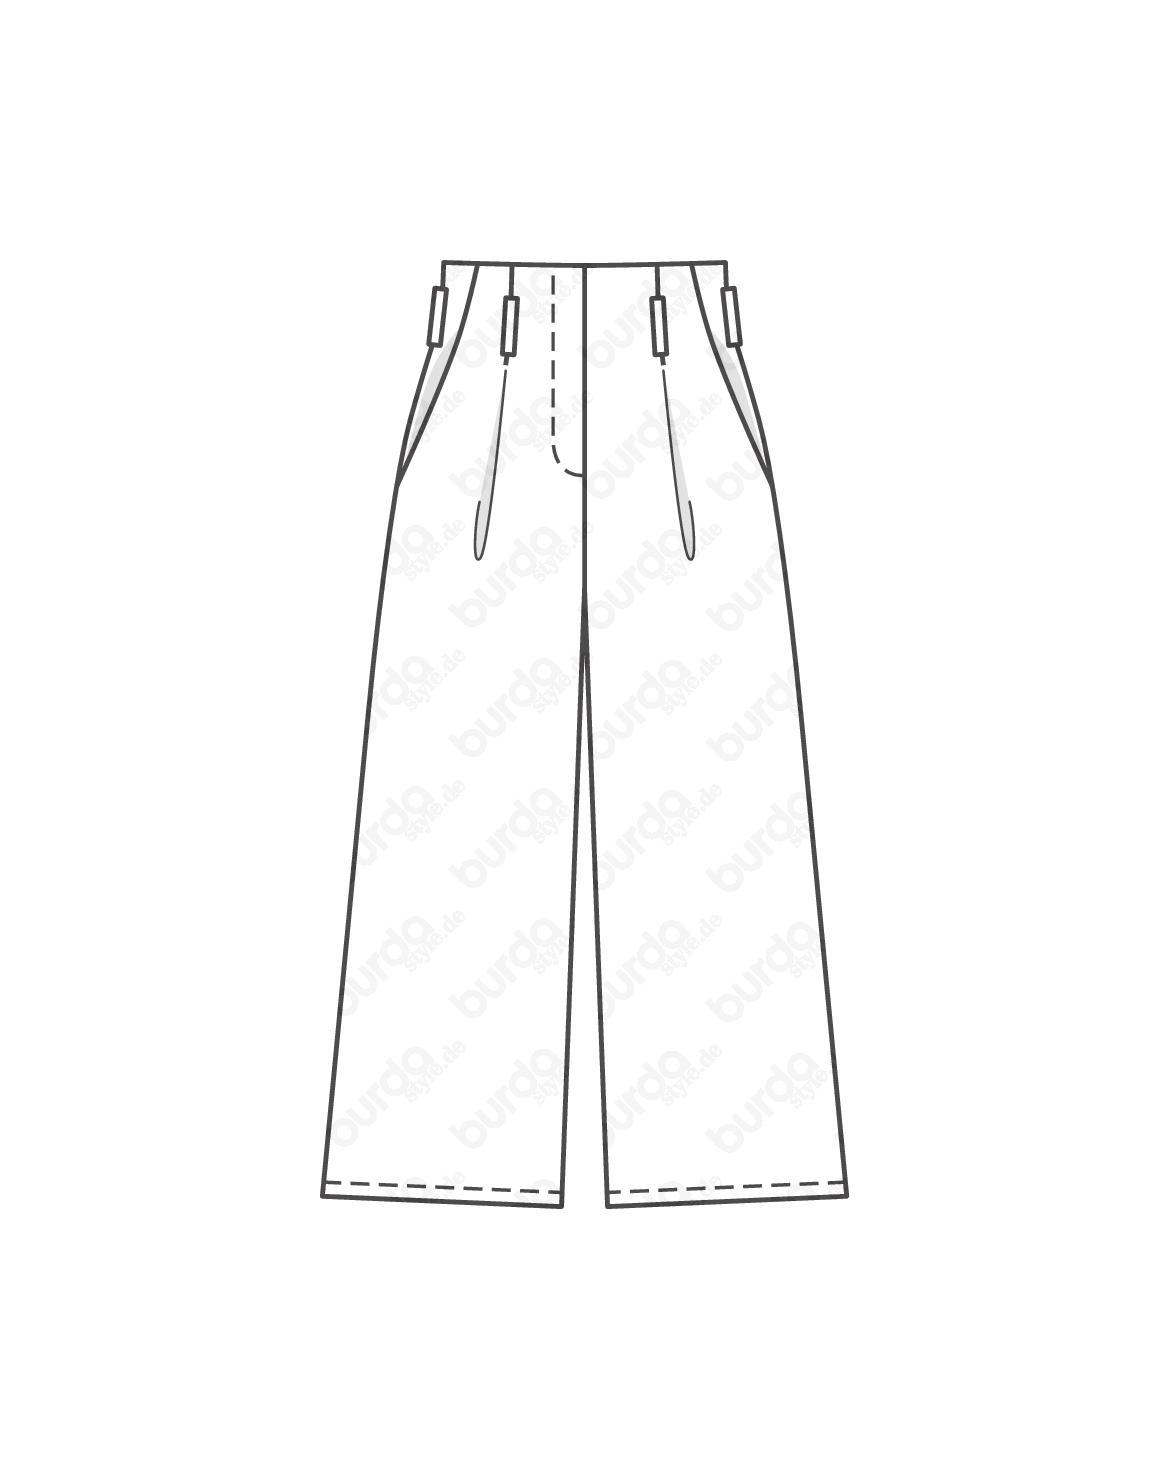 Schnittmuster Culotte 02/2017 #104C | Asia style outfit 2018 ...